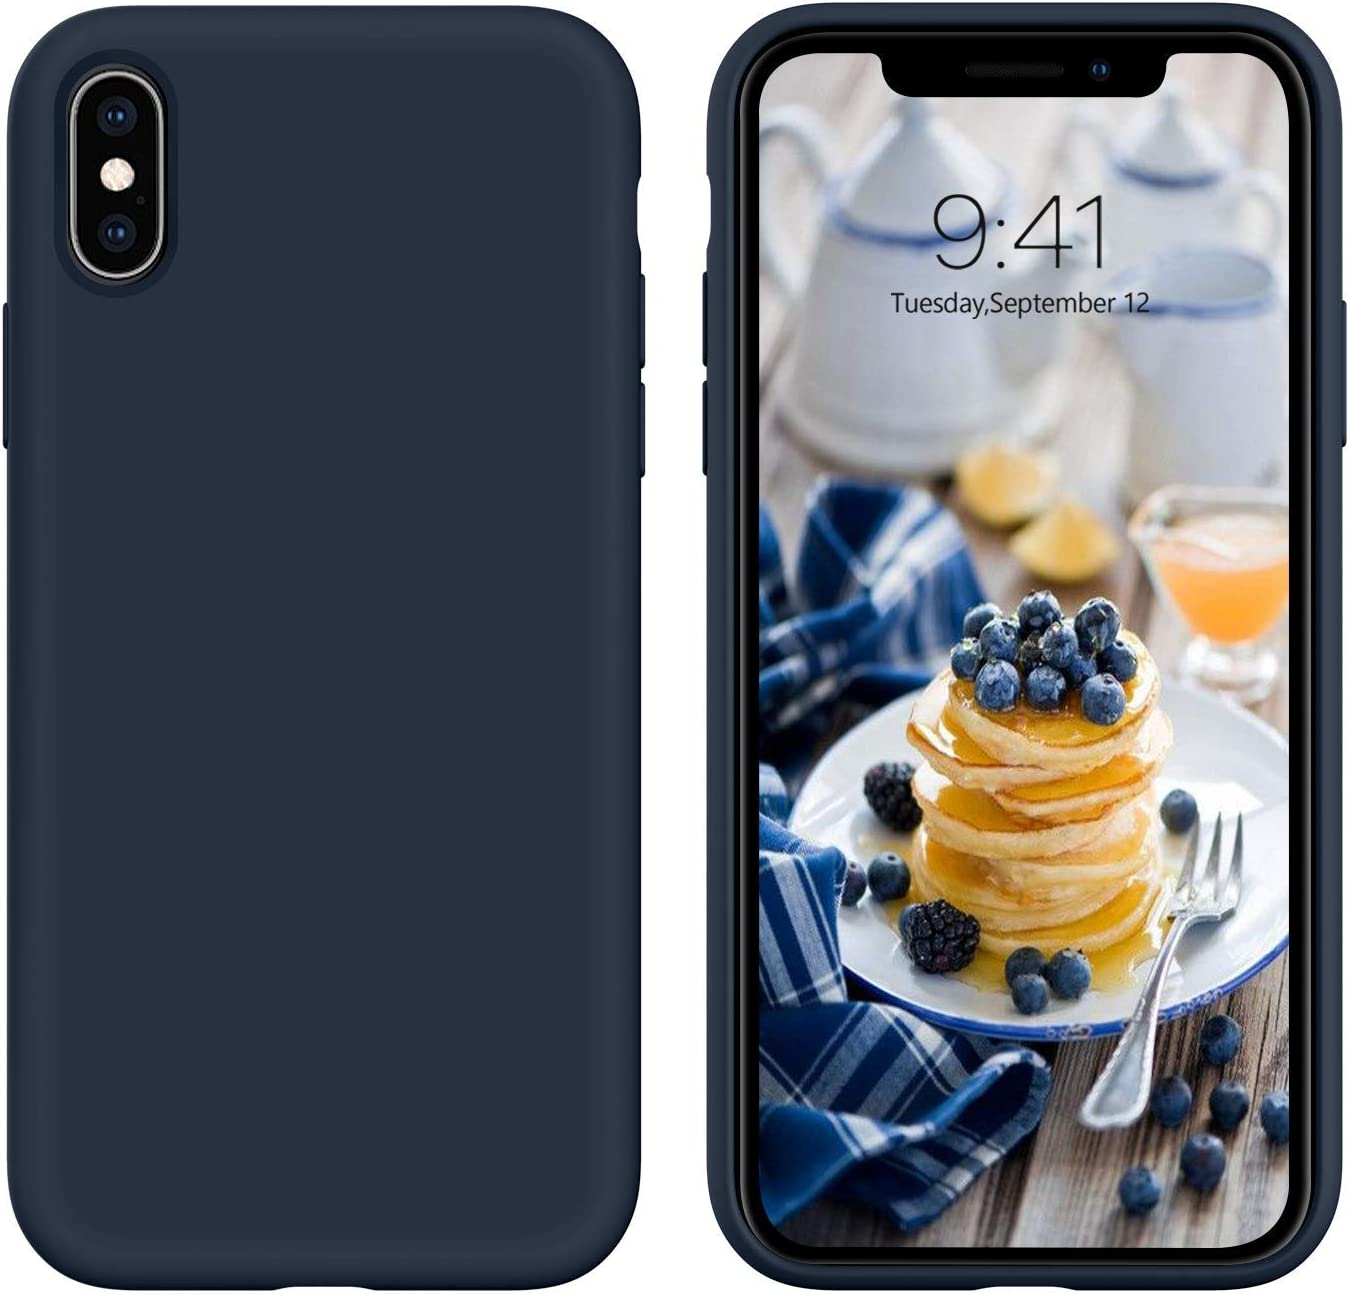 iPhone Xs Case,iPhone X Case, DUEDUE Liquid Silicone Soft Gel Rubber Slim Cover with Microfiber Cloth Lining Cushion Shockproof Full Body Protective Case for iPhone X/iPhone Xs, Midnight Blue